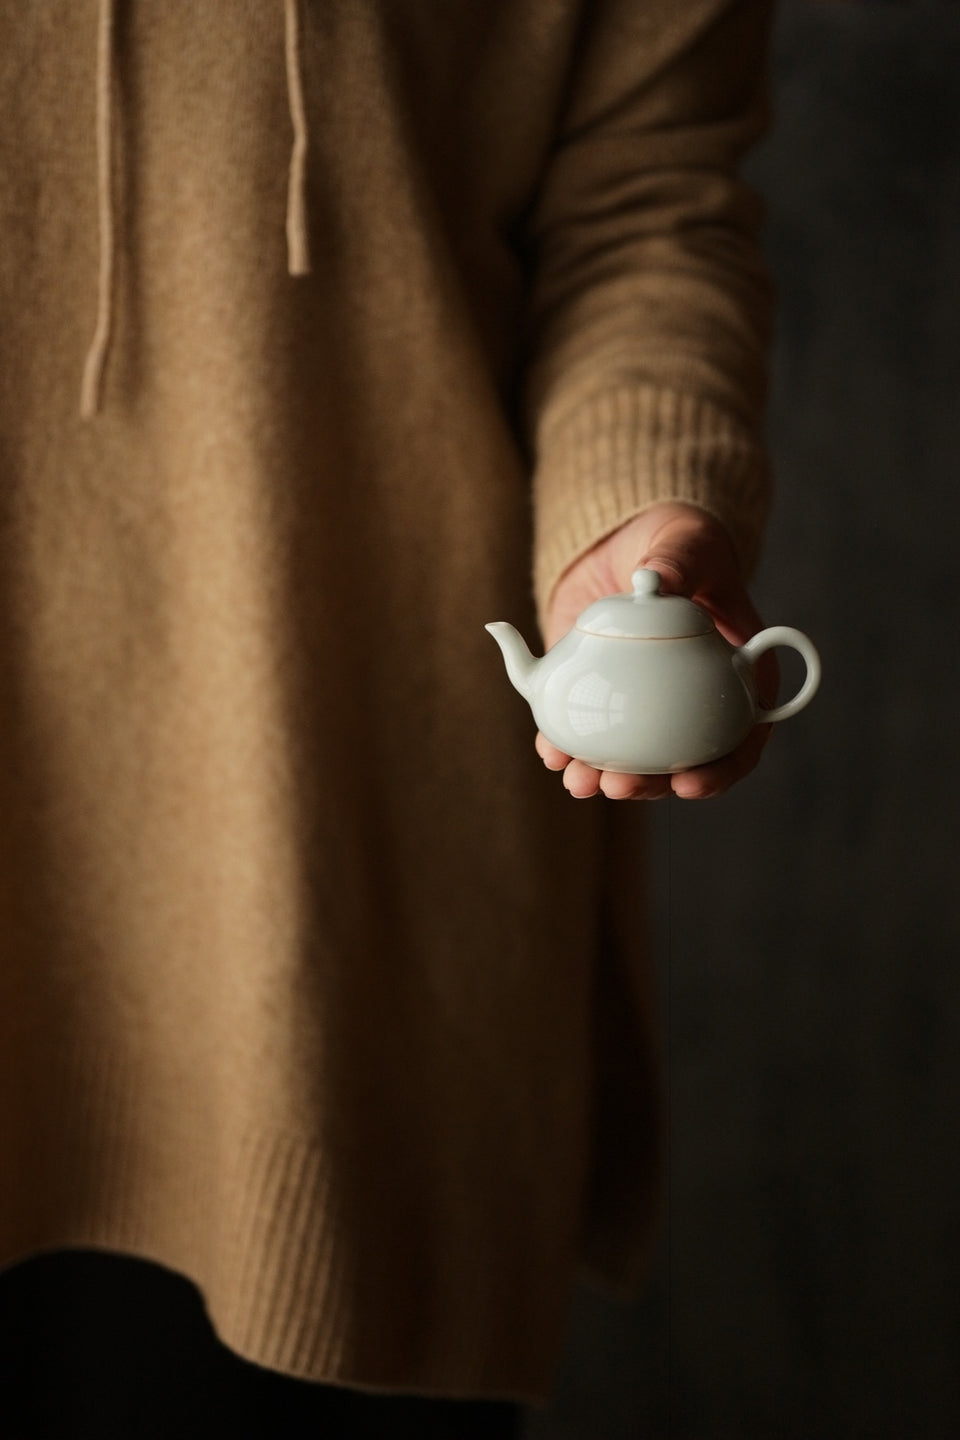 Petite Celadon Pear Shaped Porcelain Teapot